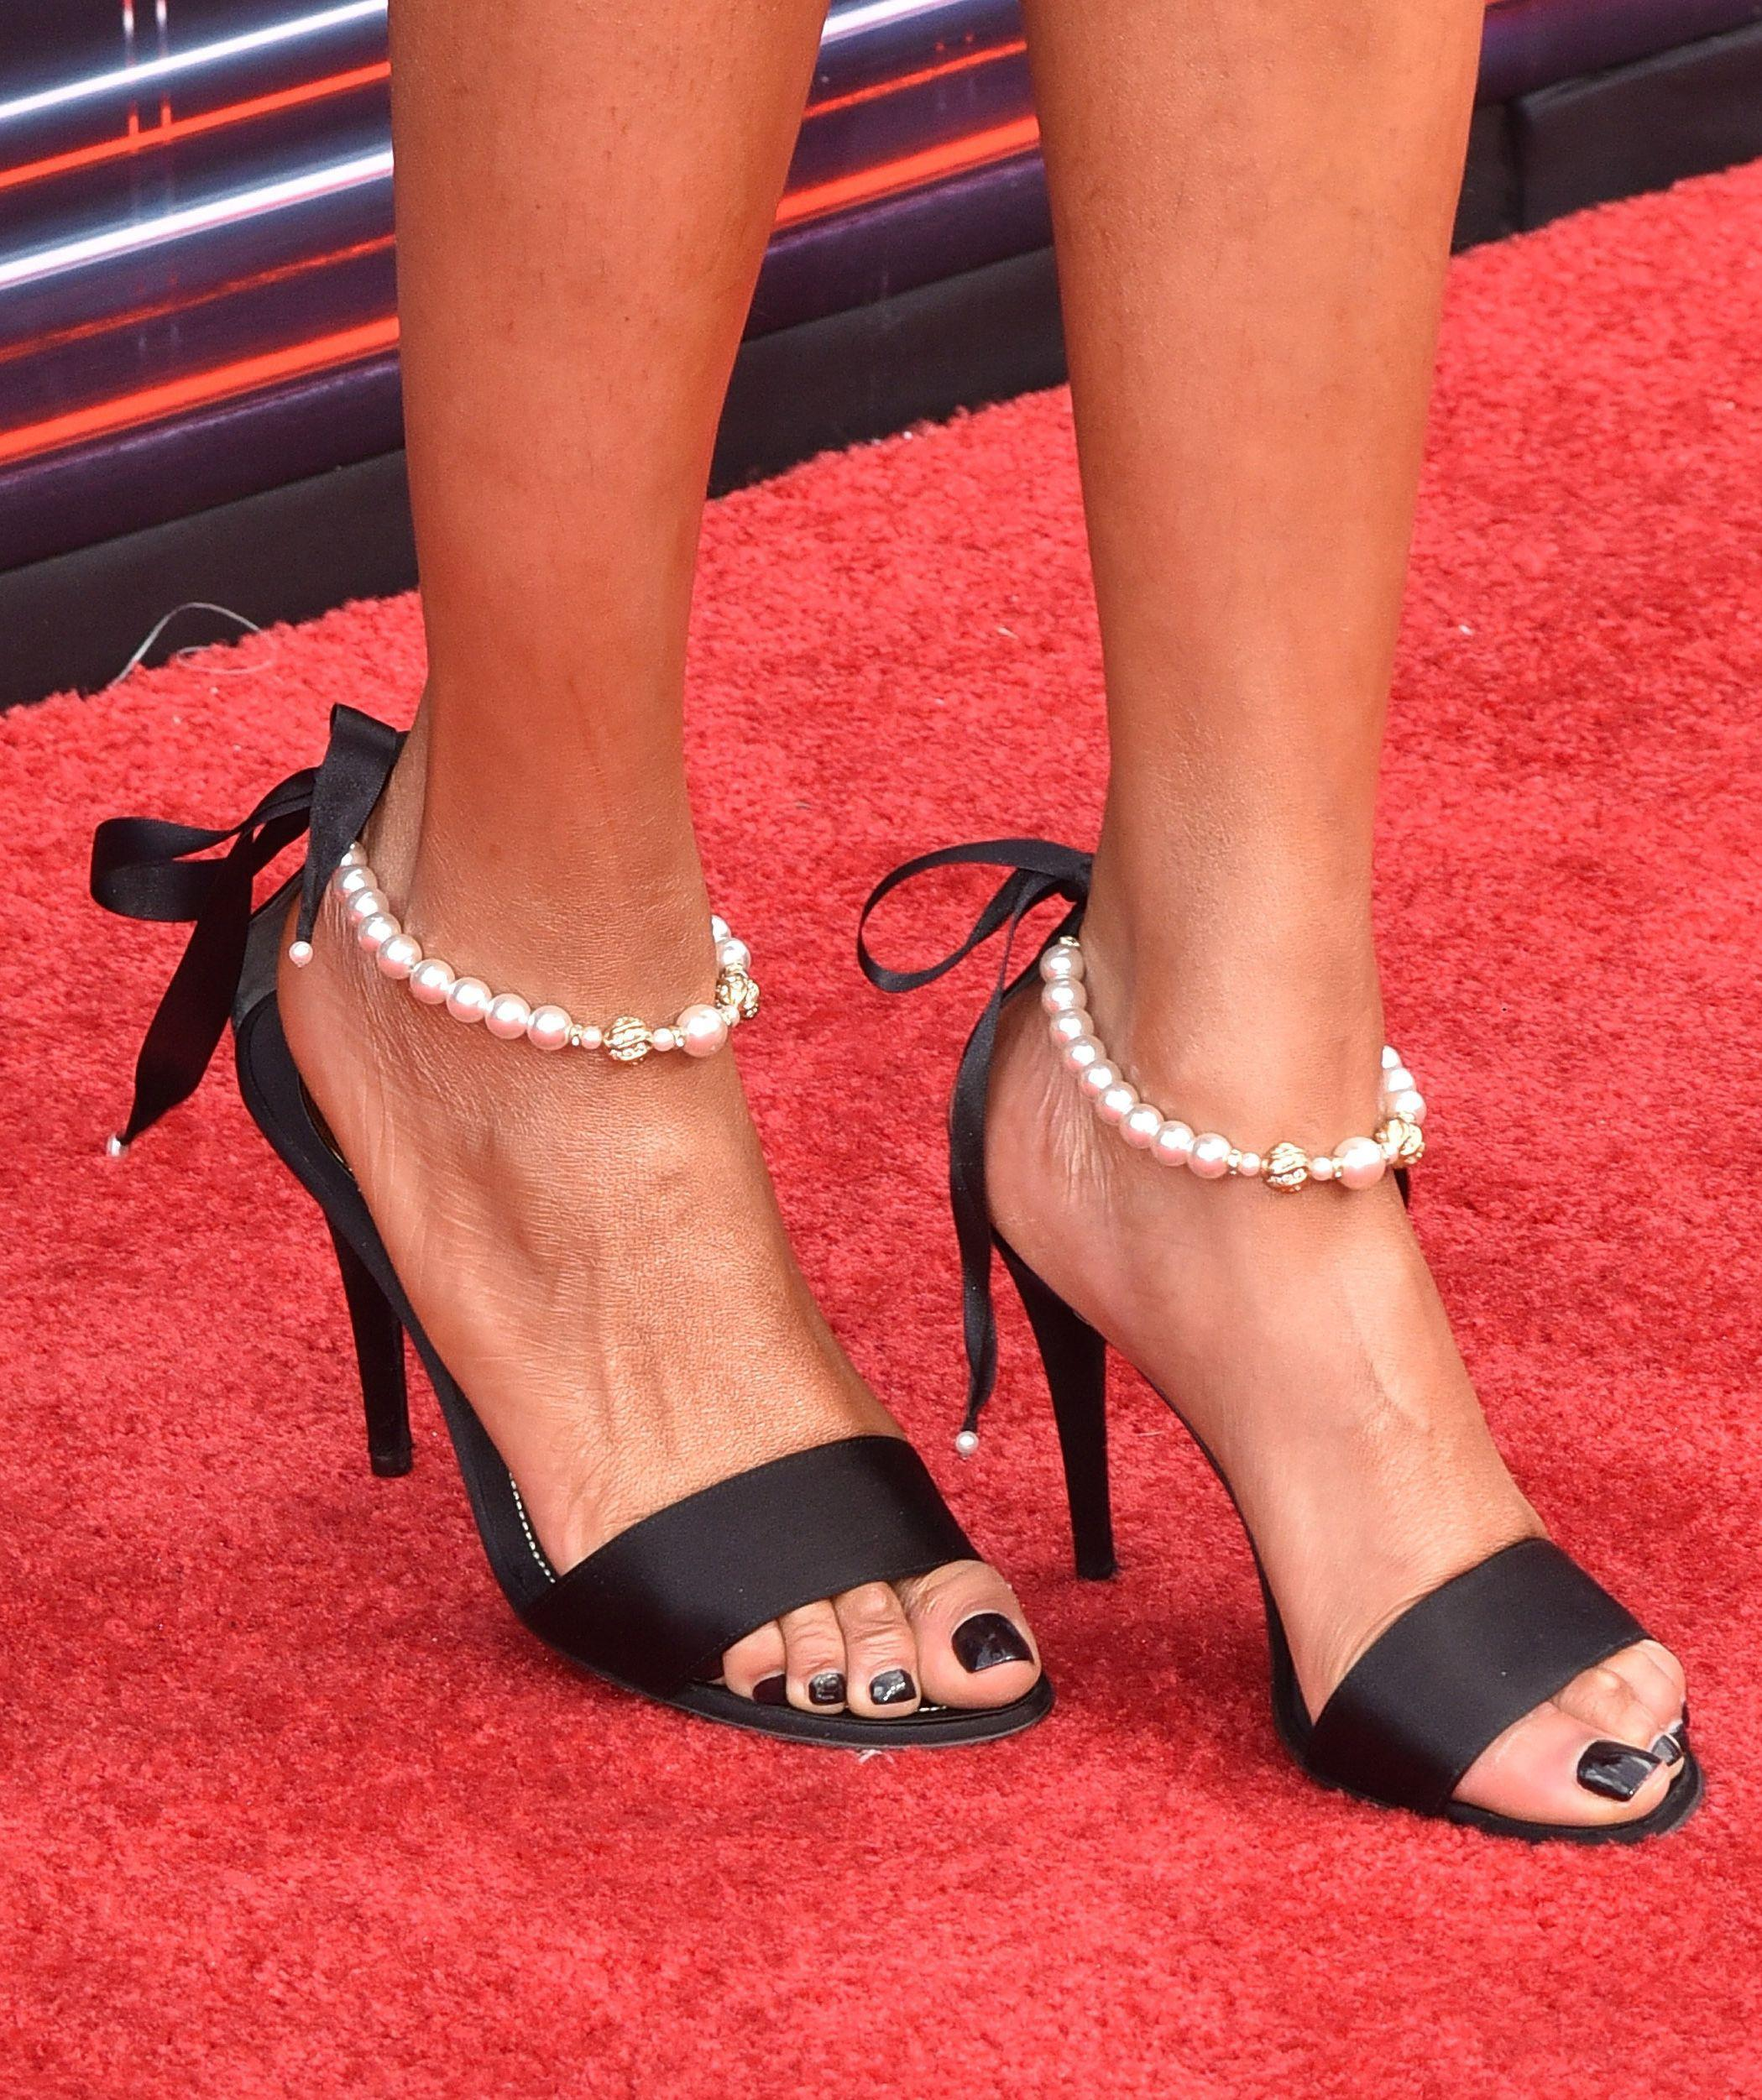 tyra banks sexy toes nails